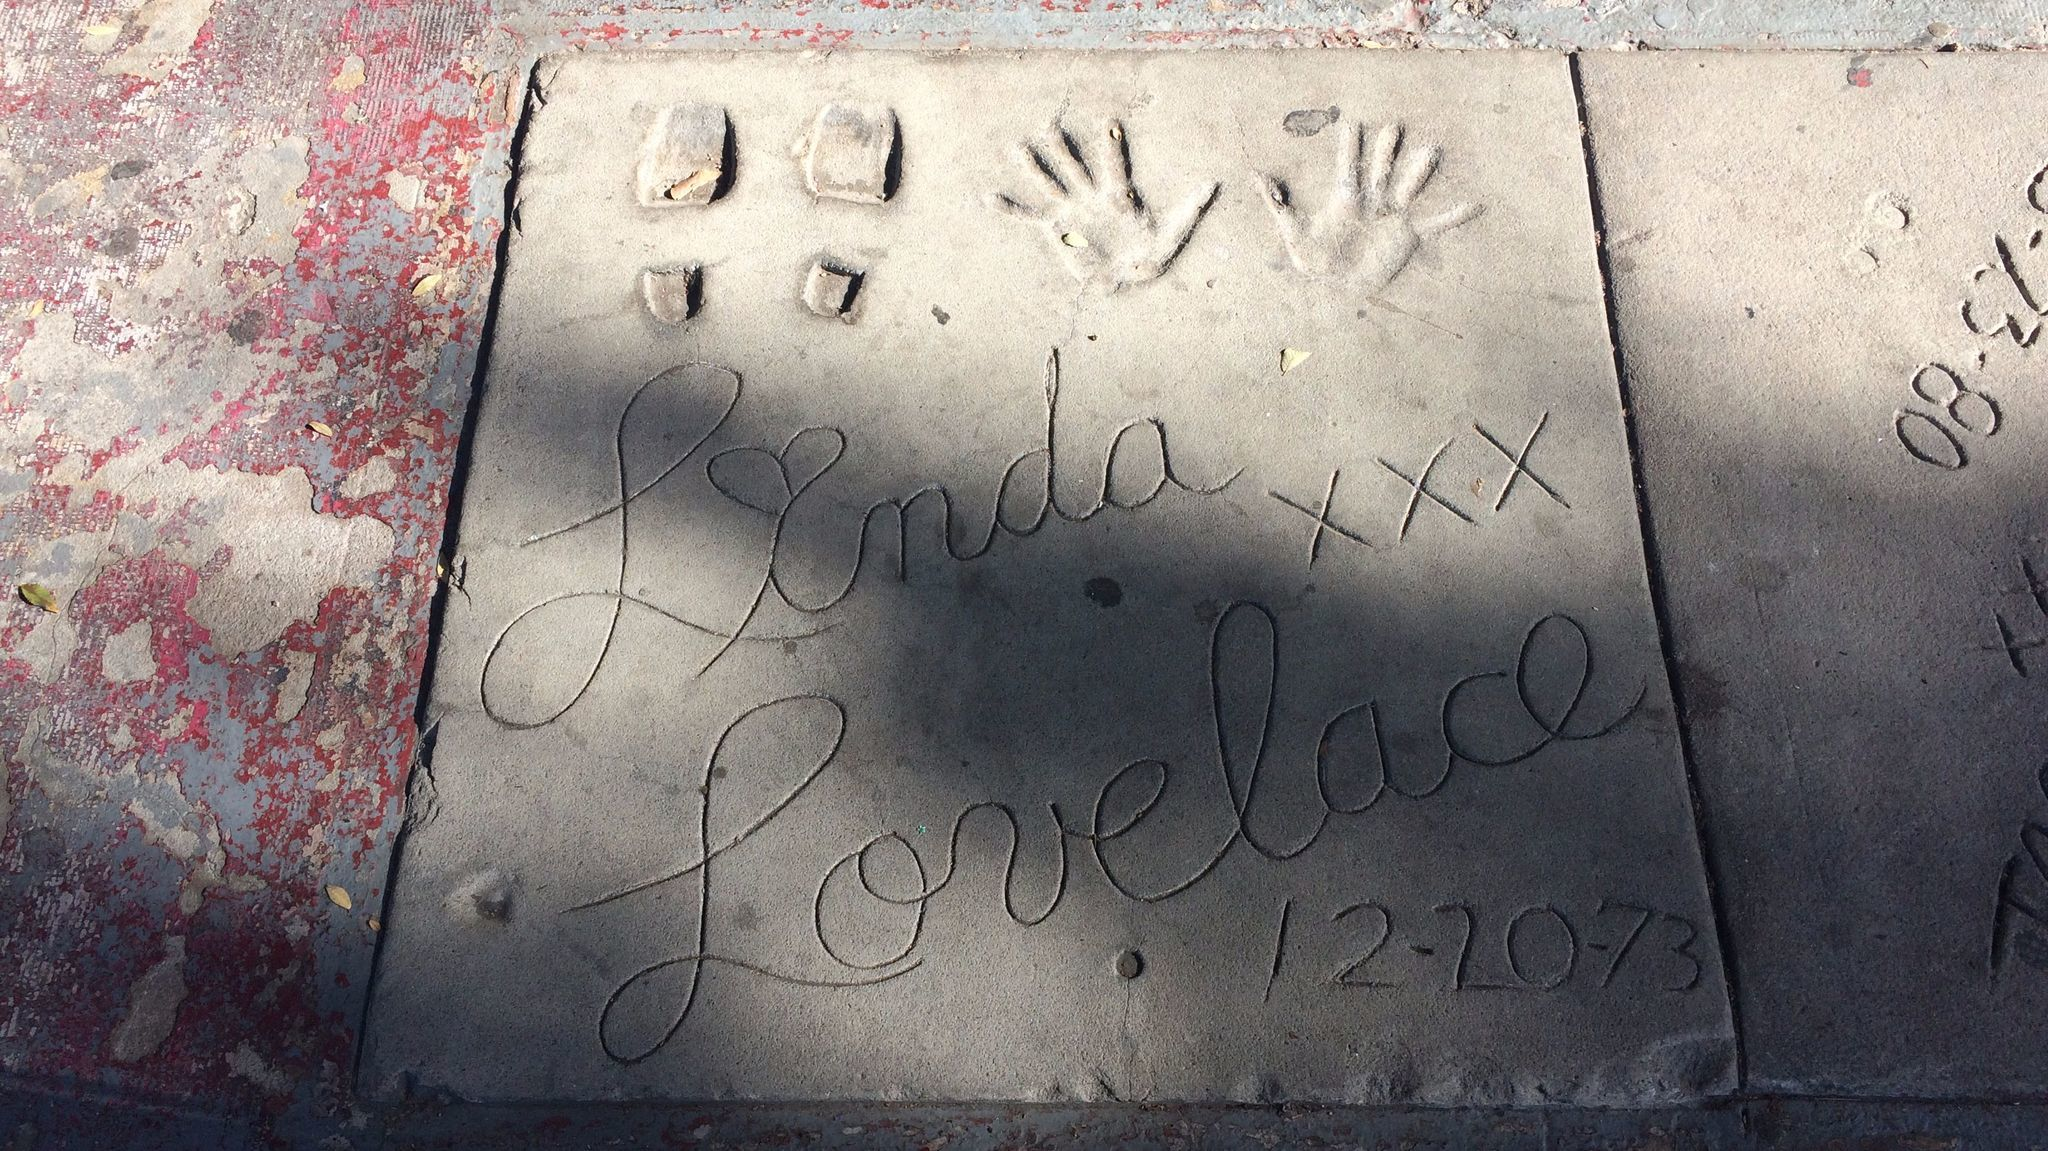 There is a small porn walk of fame before the Studs theater, which features foot and handprints by the like of '70s adults stars like Linda Lovelace.